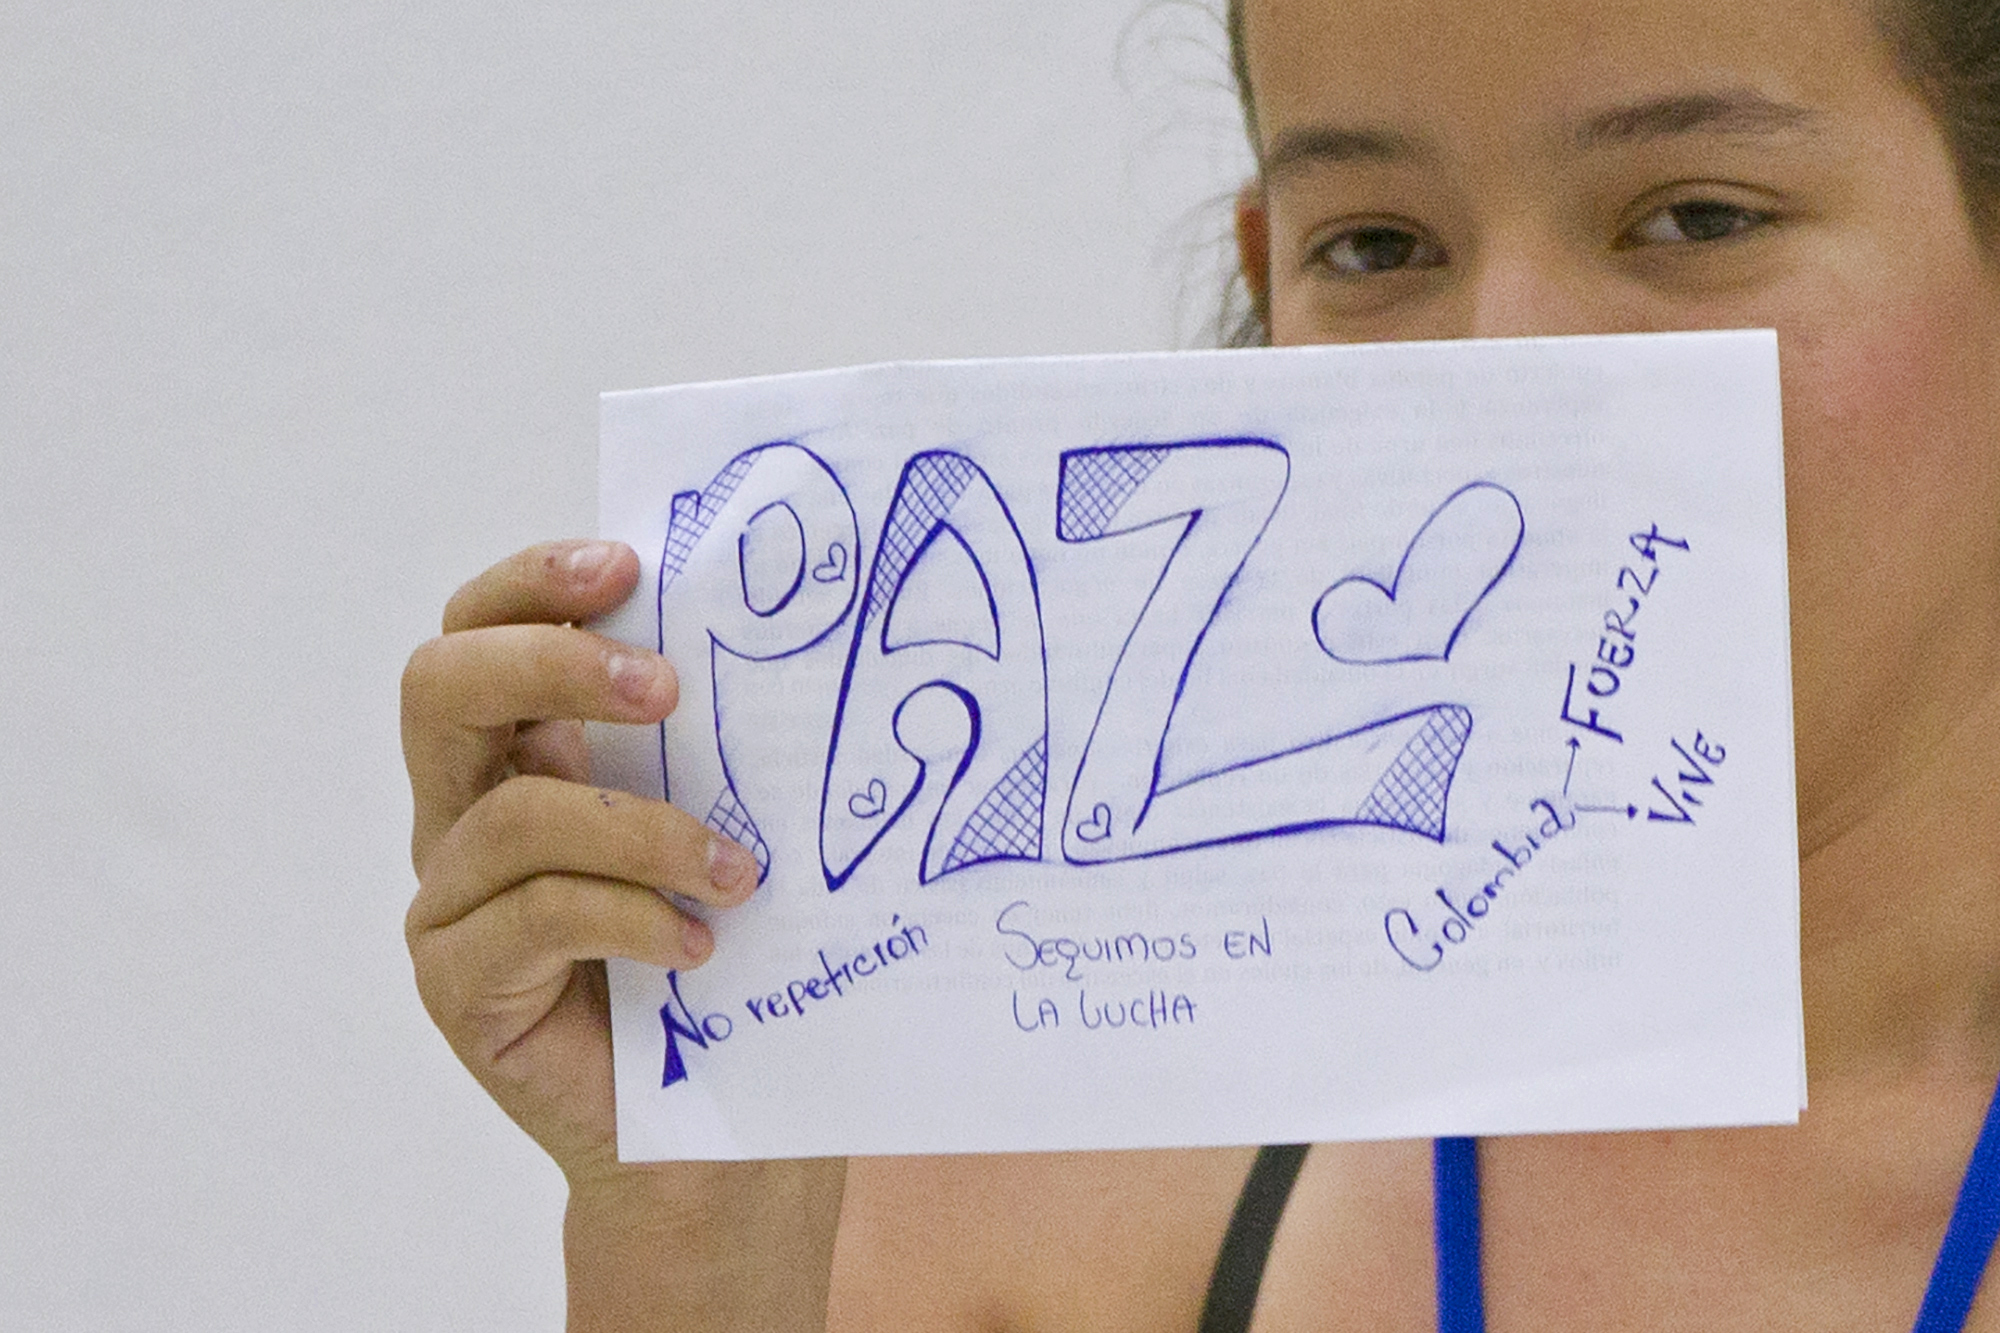 """Erika Paola Jaimes, a victim of the Colombian armed conflict, holds a paper that says """"Peace"""" during a conference for peace talks between the Revolutionary Armed Forces of Colombia (FARC) and the Colombian government in Havana October 2, 2014. The talks, an effort to end 50 years of war that has killed over 200,000 and displaced millions, are opposed by some political leaders, most notably hard-line ex-President and now senator Alvaro Uribe, who says they may lead to impunity for rebel leadership.   REUTERS/Alexandre Meneghini (CUBA - Tags: POLITICS CONFLICT) - RTR48R0U"""